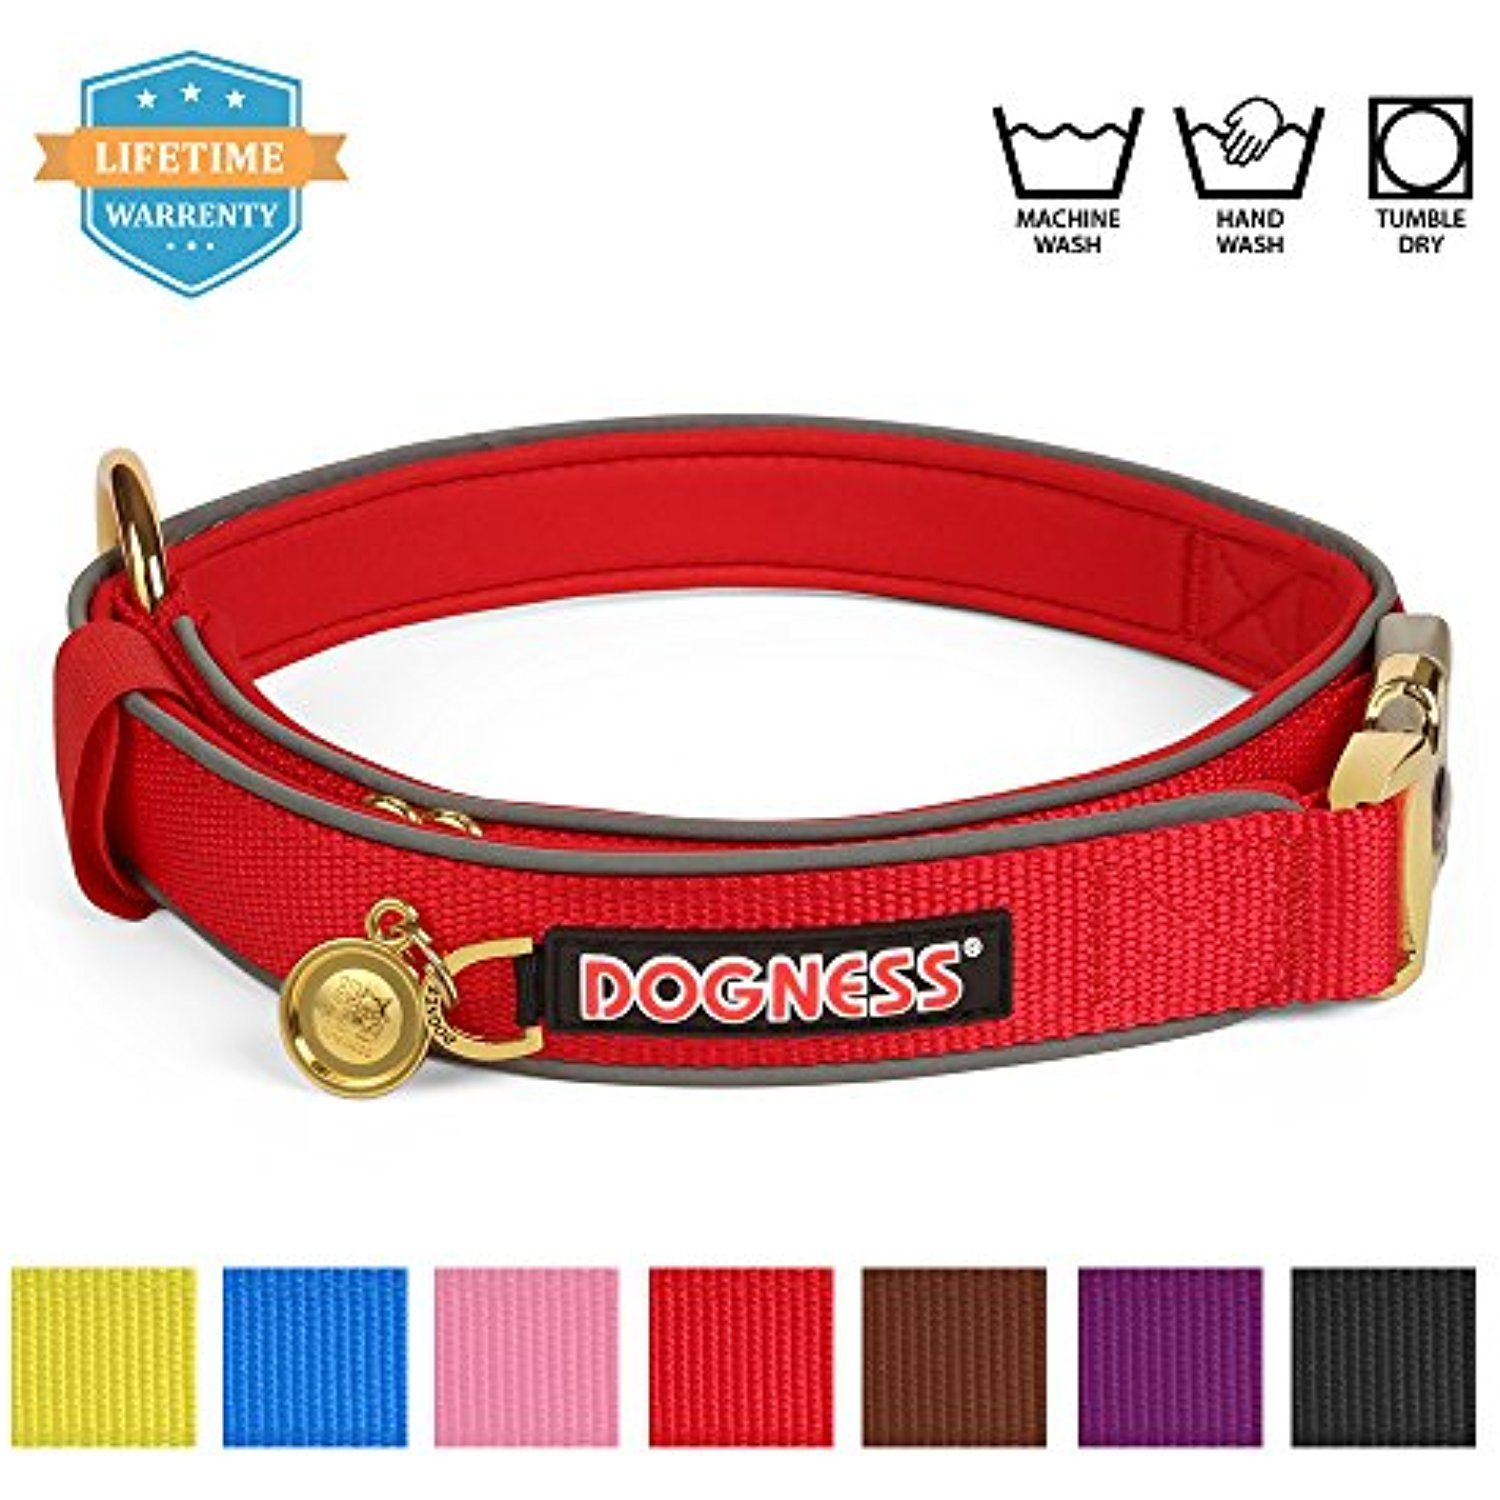 DOGNESS AntiChoking Dog Collar with Patented Gold Plated